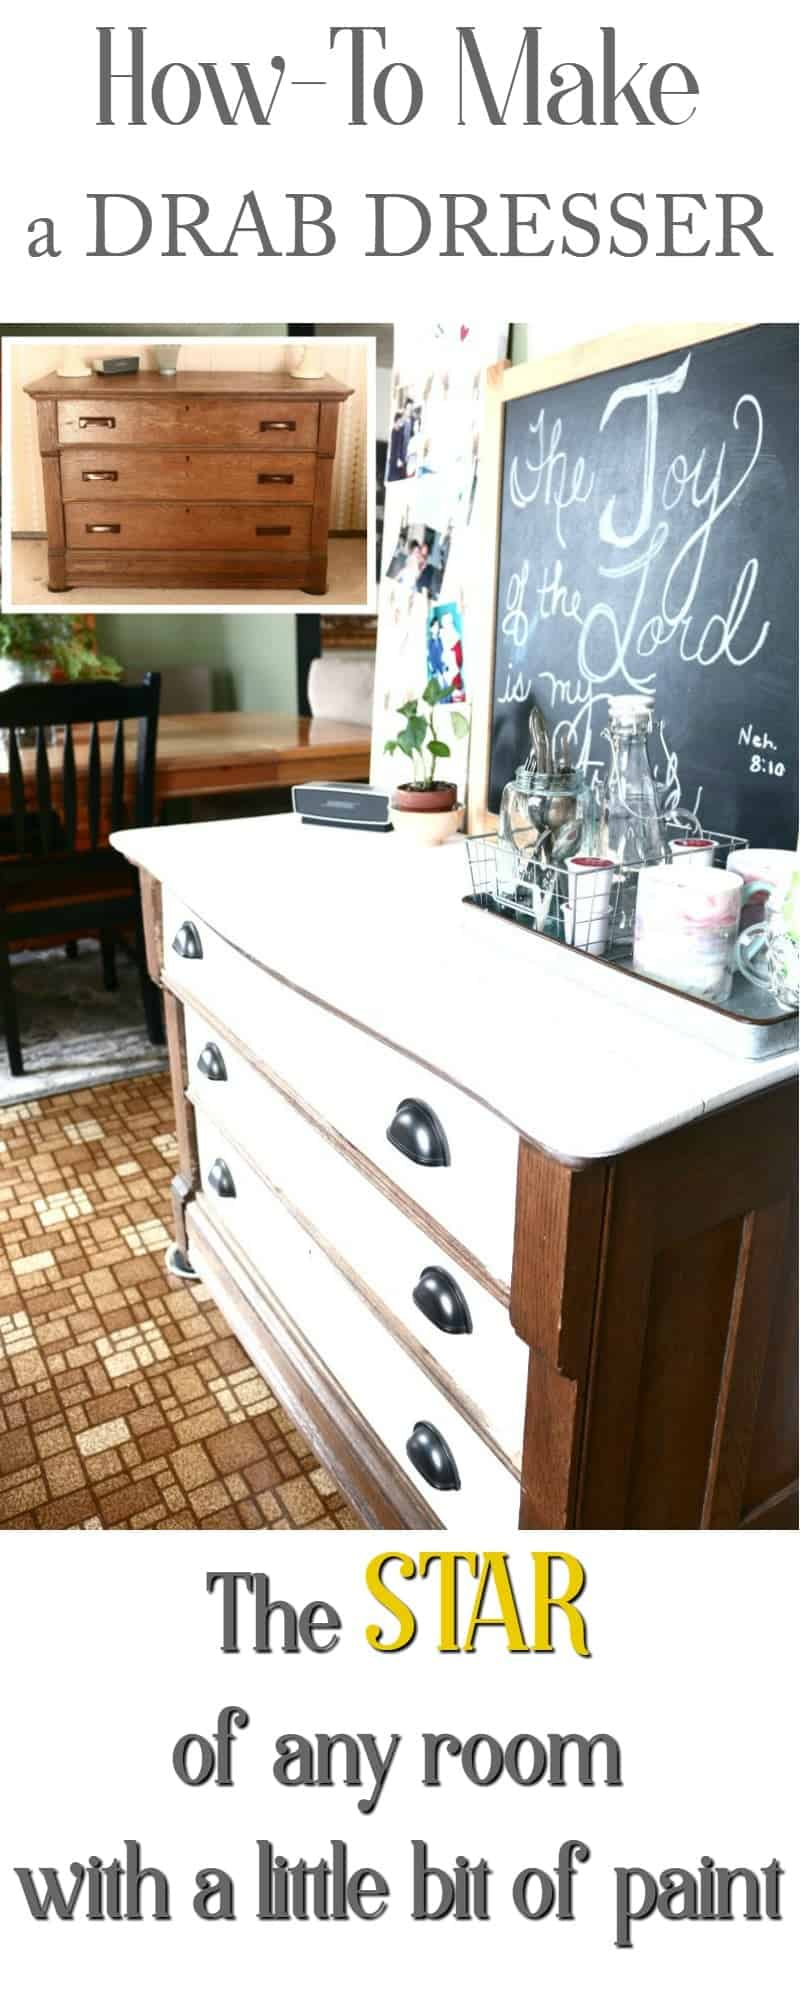 How-To Make a Drab Dresser the Star of Any Room with a little bit of paint